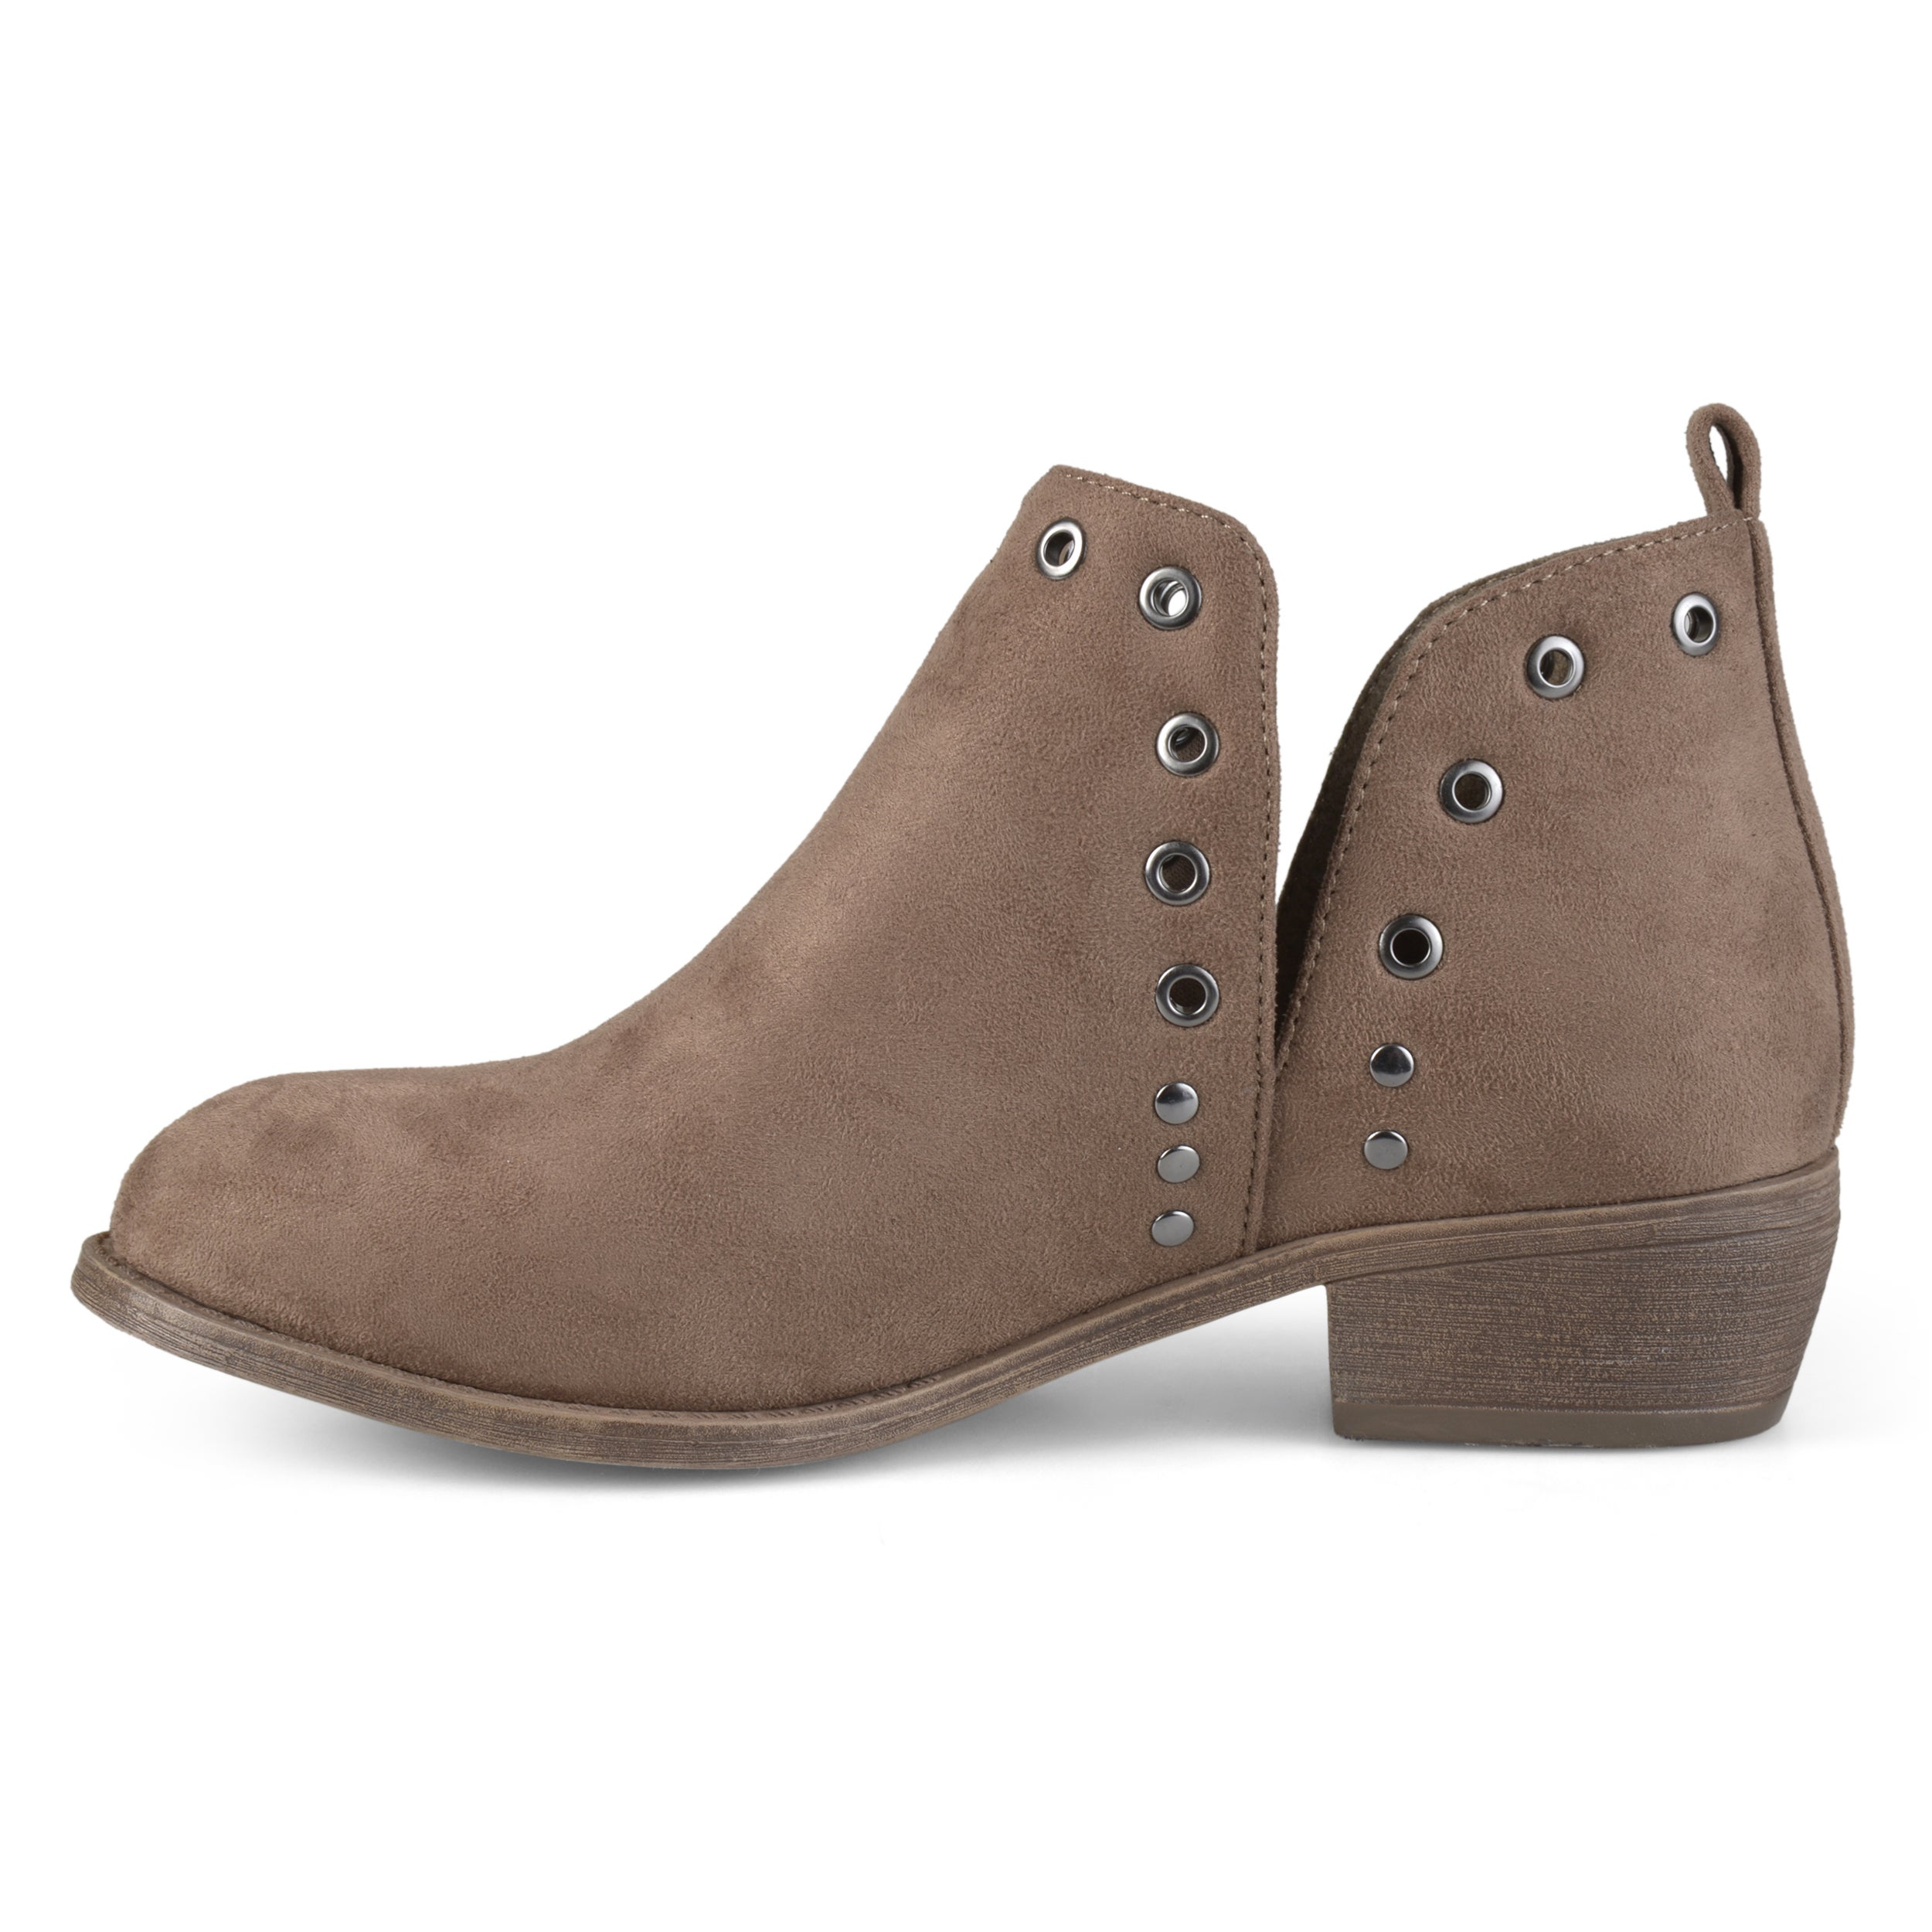 Journee Collection Firth ... Women's Ankle Boots LEQr4t